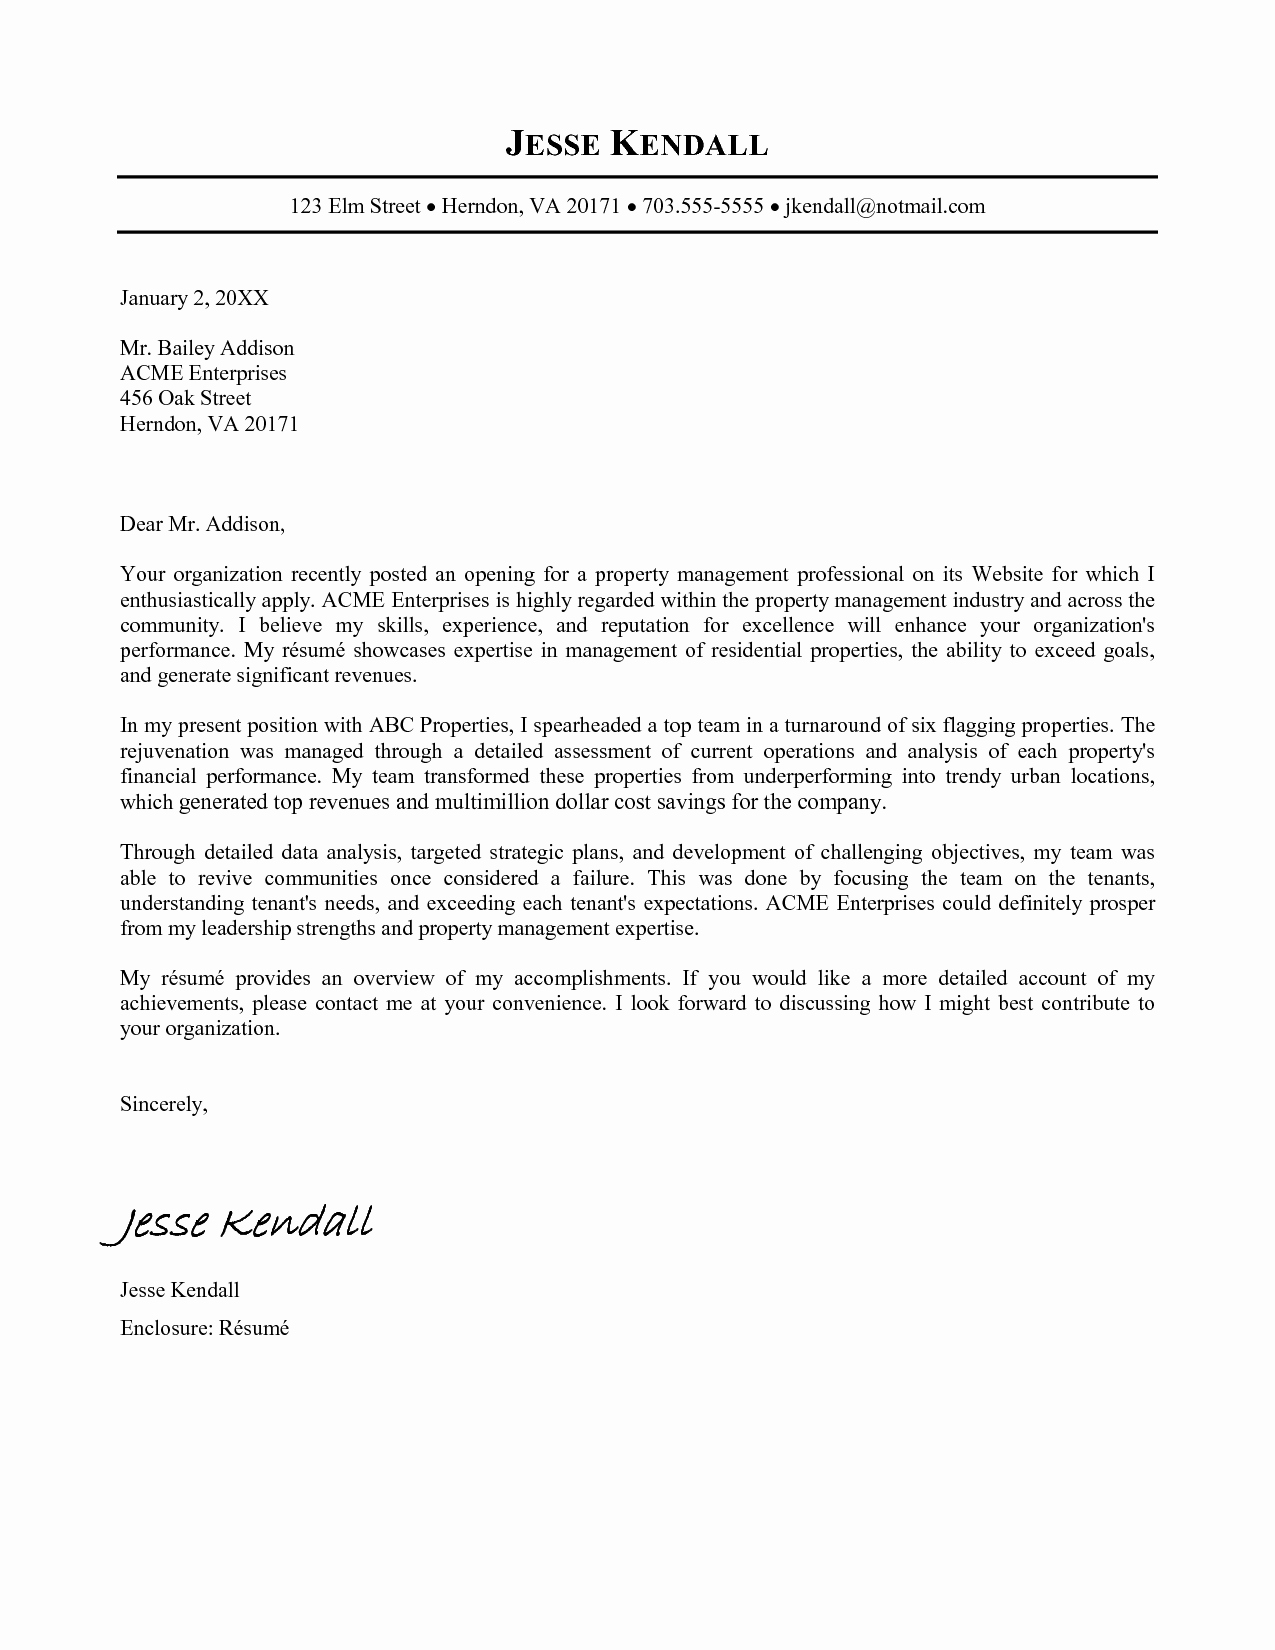 Template Of A Cover Letter New Standard Cover Letter Template Templates Station